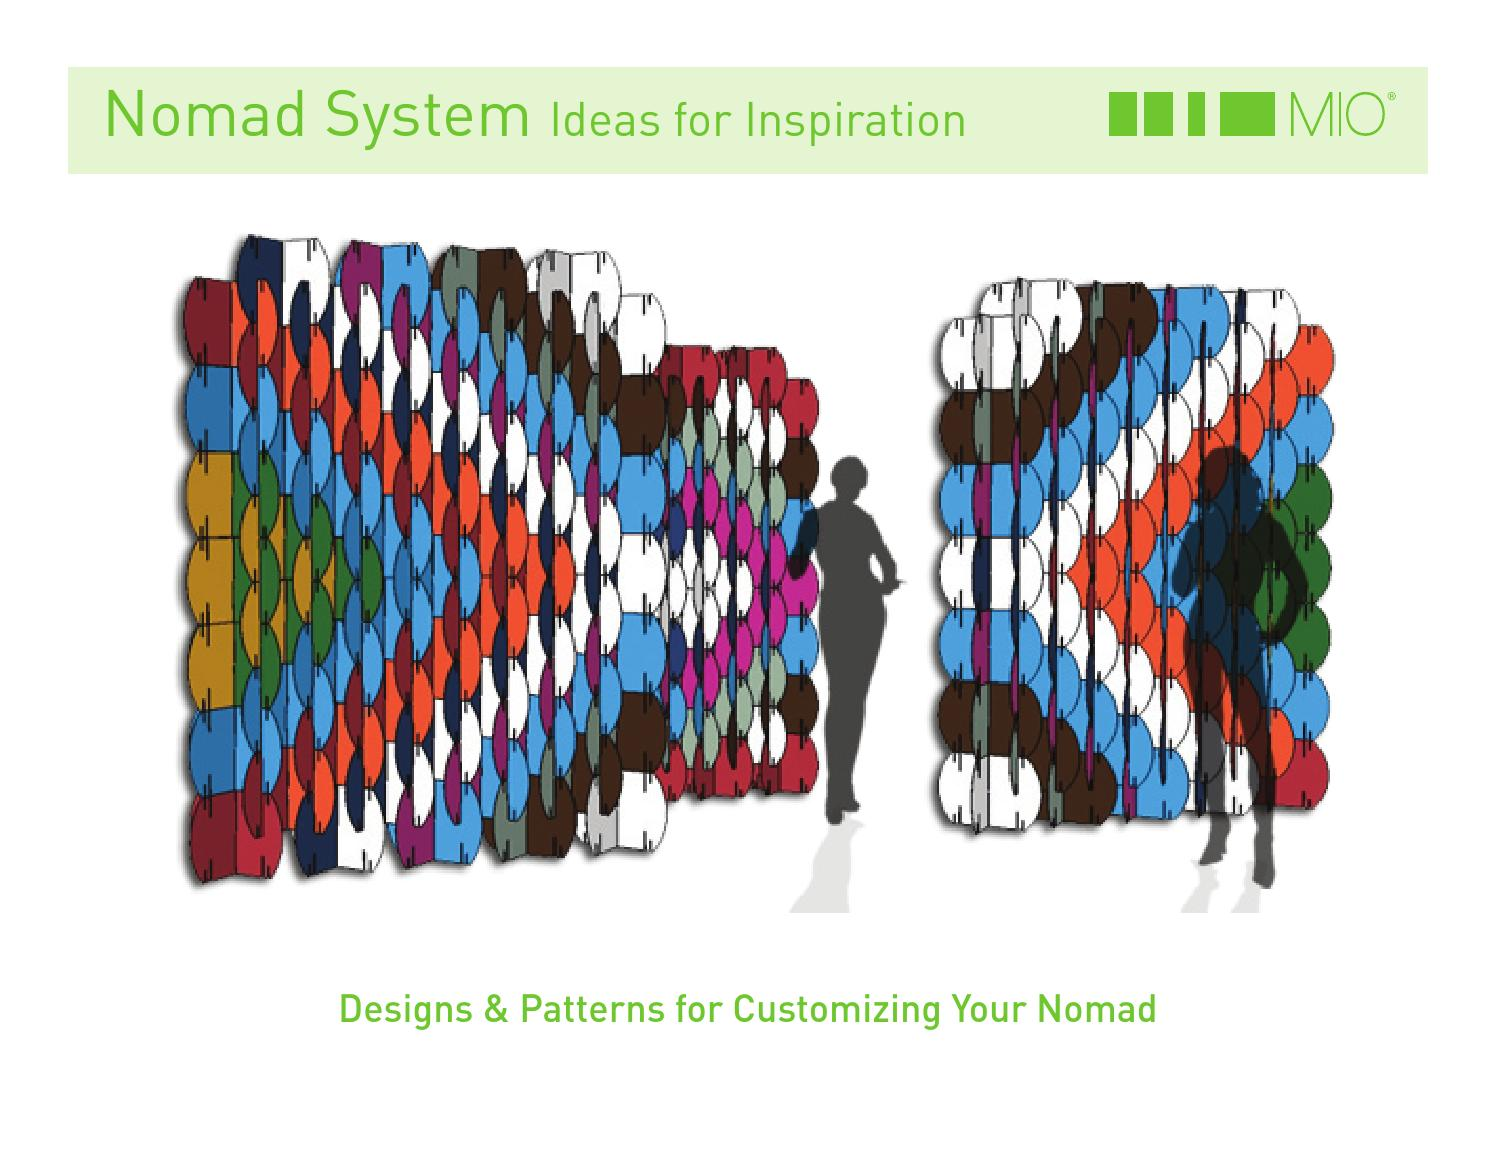 mio nomad system  idea flip book by mio  green design for  - mio nomad system  idea flip book by mio  green design for everyone issuu